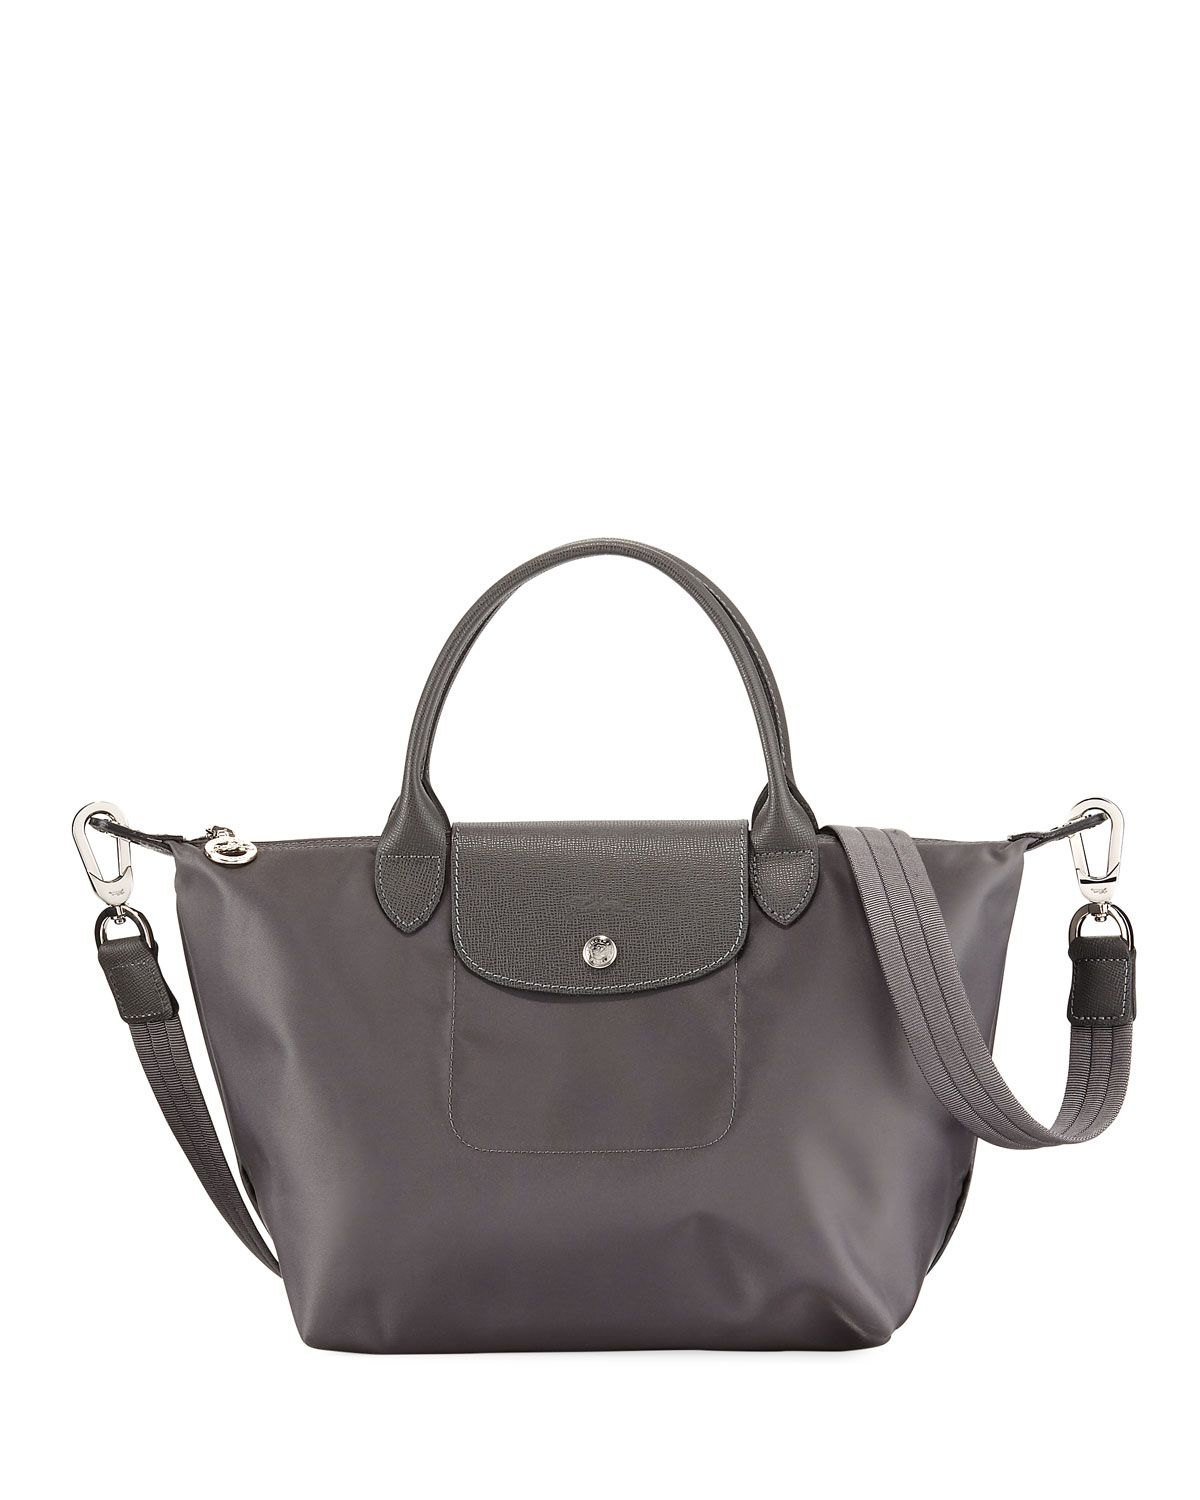 16e85d2a3c20 LONGCHAMP LE PLIAGE NEO SMALL NYLON TOTE BAG.  longchamp  bags  tote   leather  lining  shoulder bags  hand bags  nylon